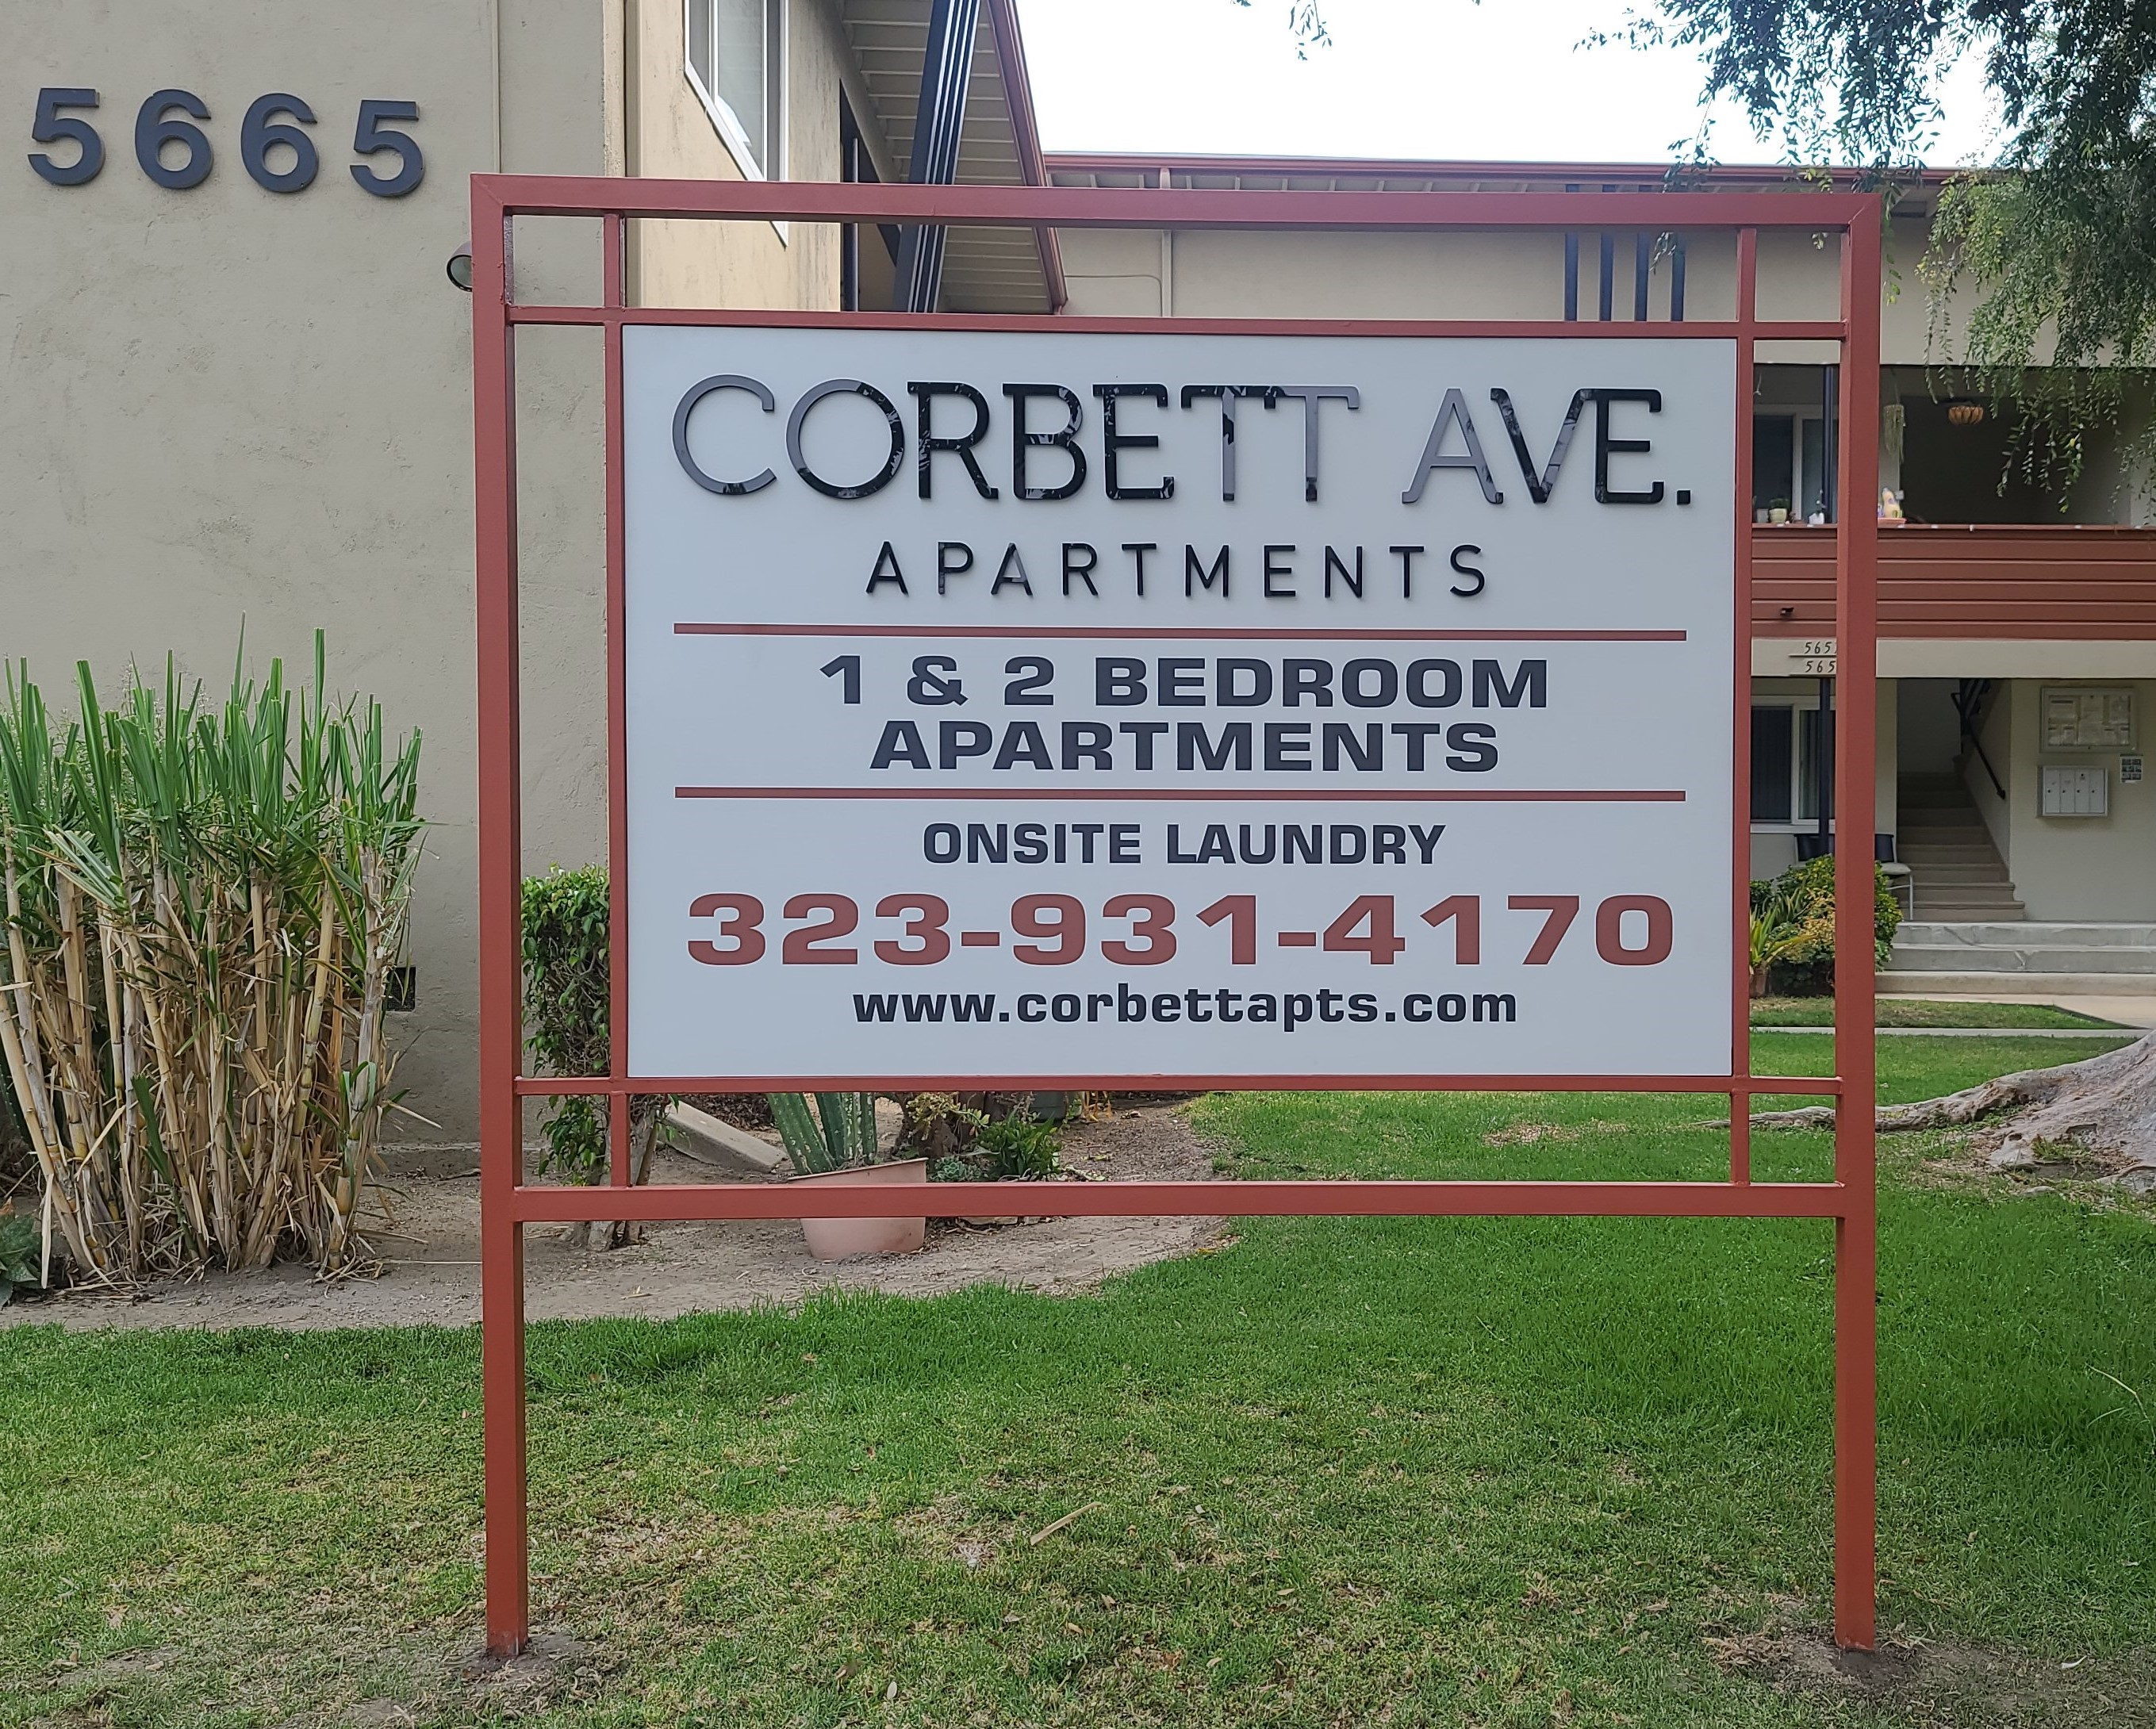 This post and panel apartment sign we fabricated and installed for Jones and Jones shows off their property in Corbett Avenue, Los Angeles,